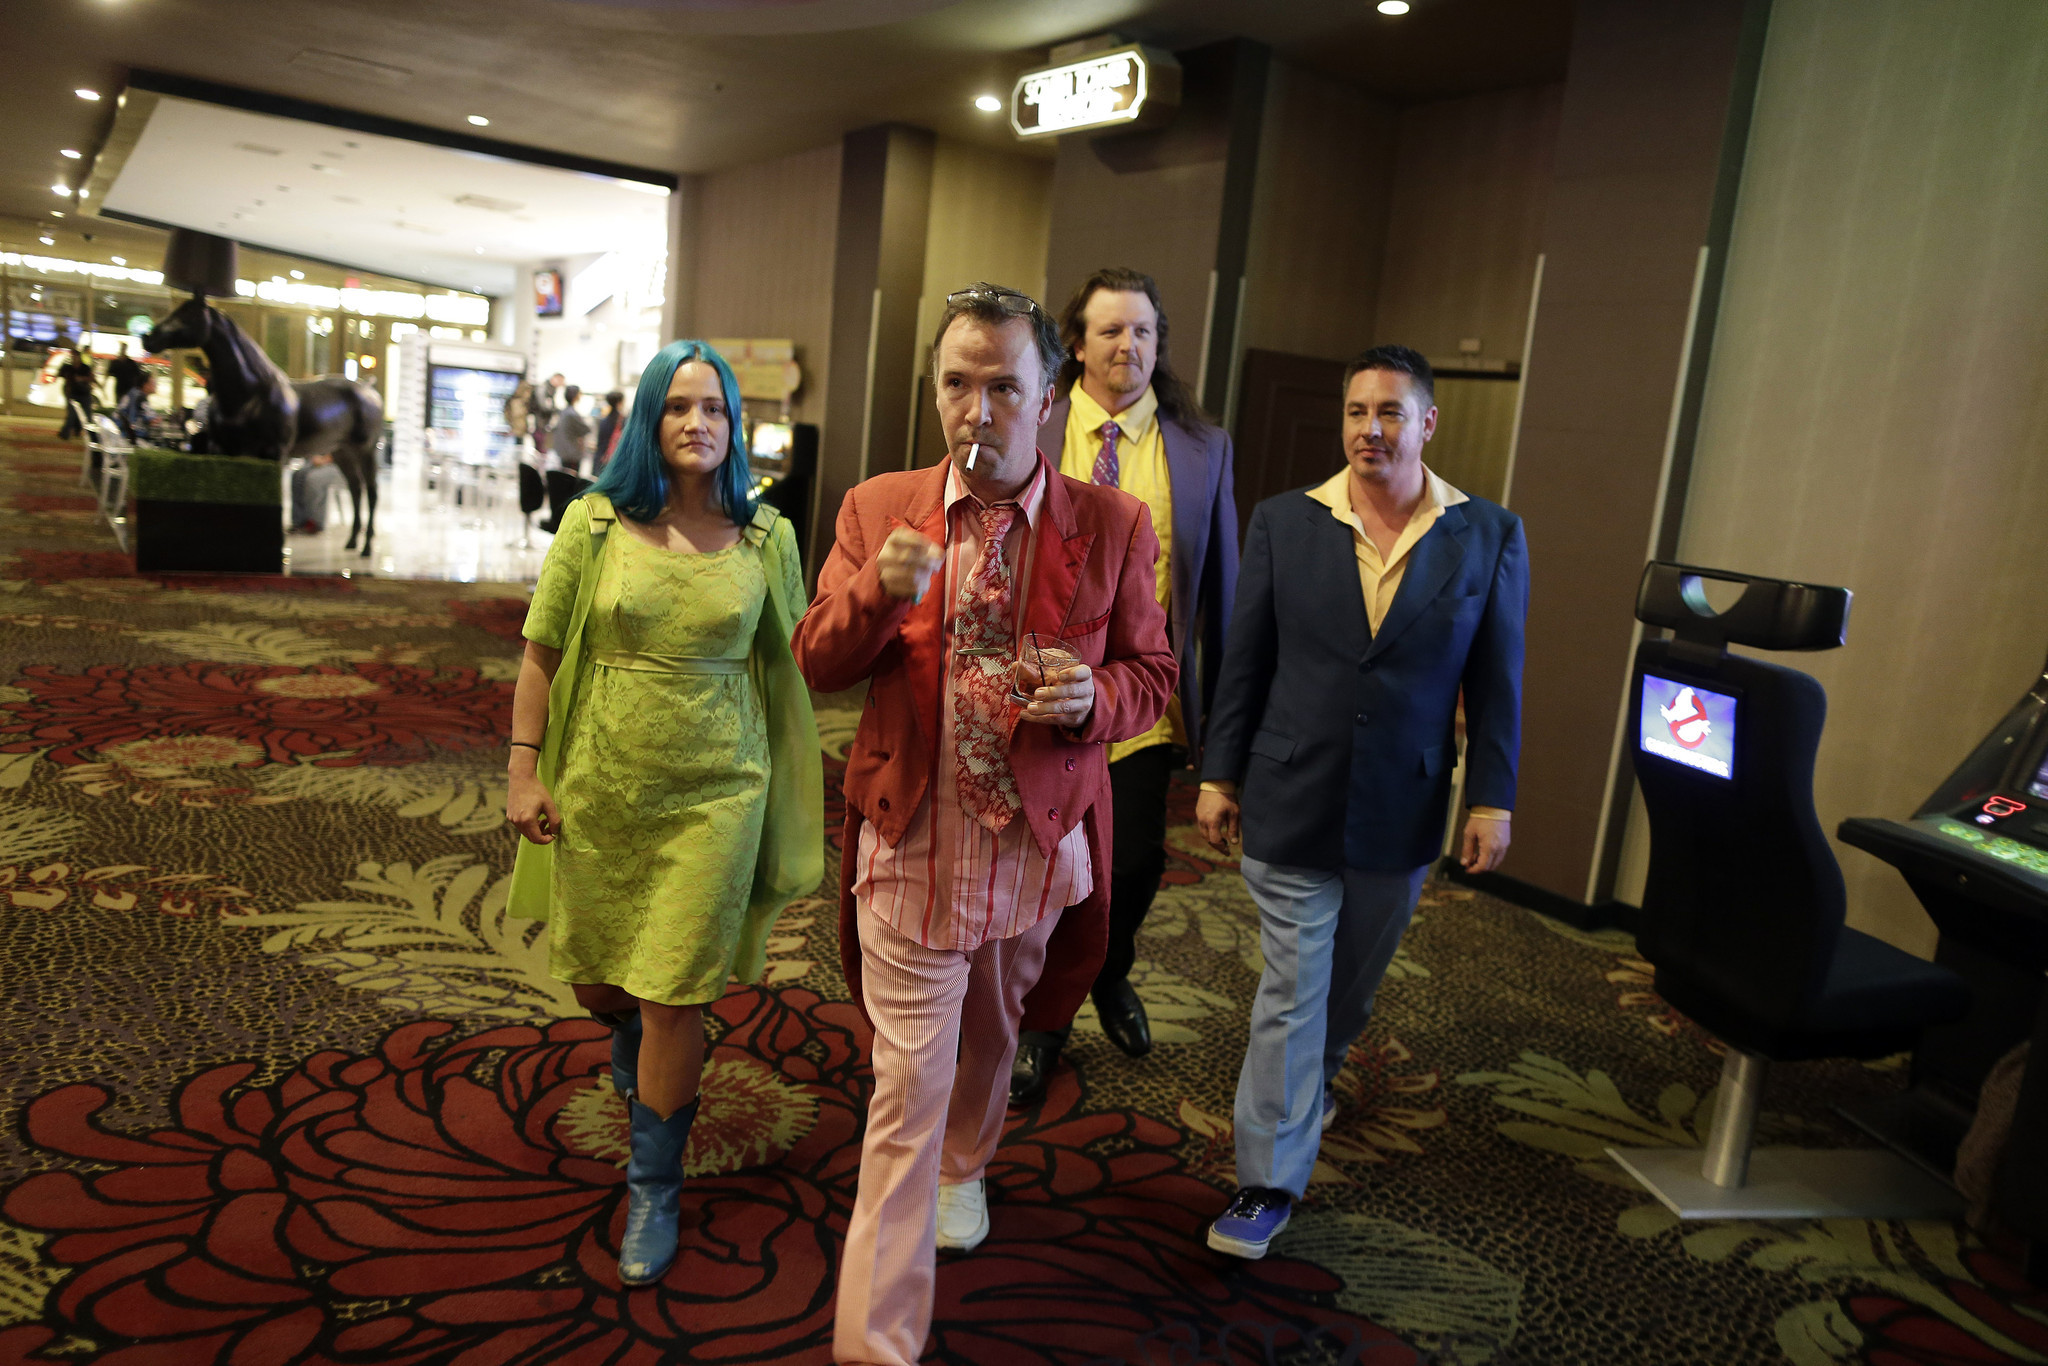 standup comedian doug stanhope laughs in the face of self